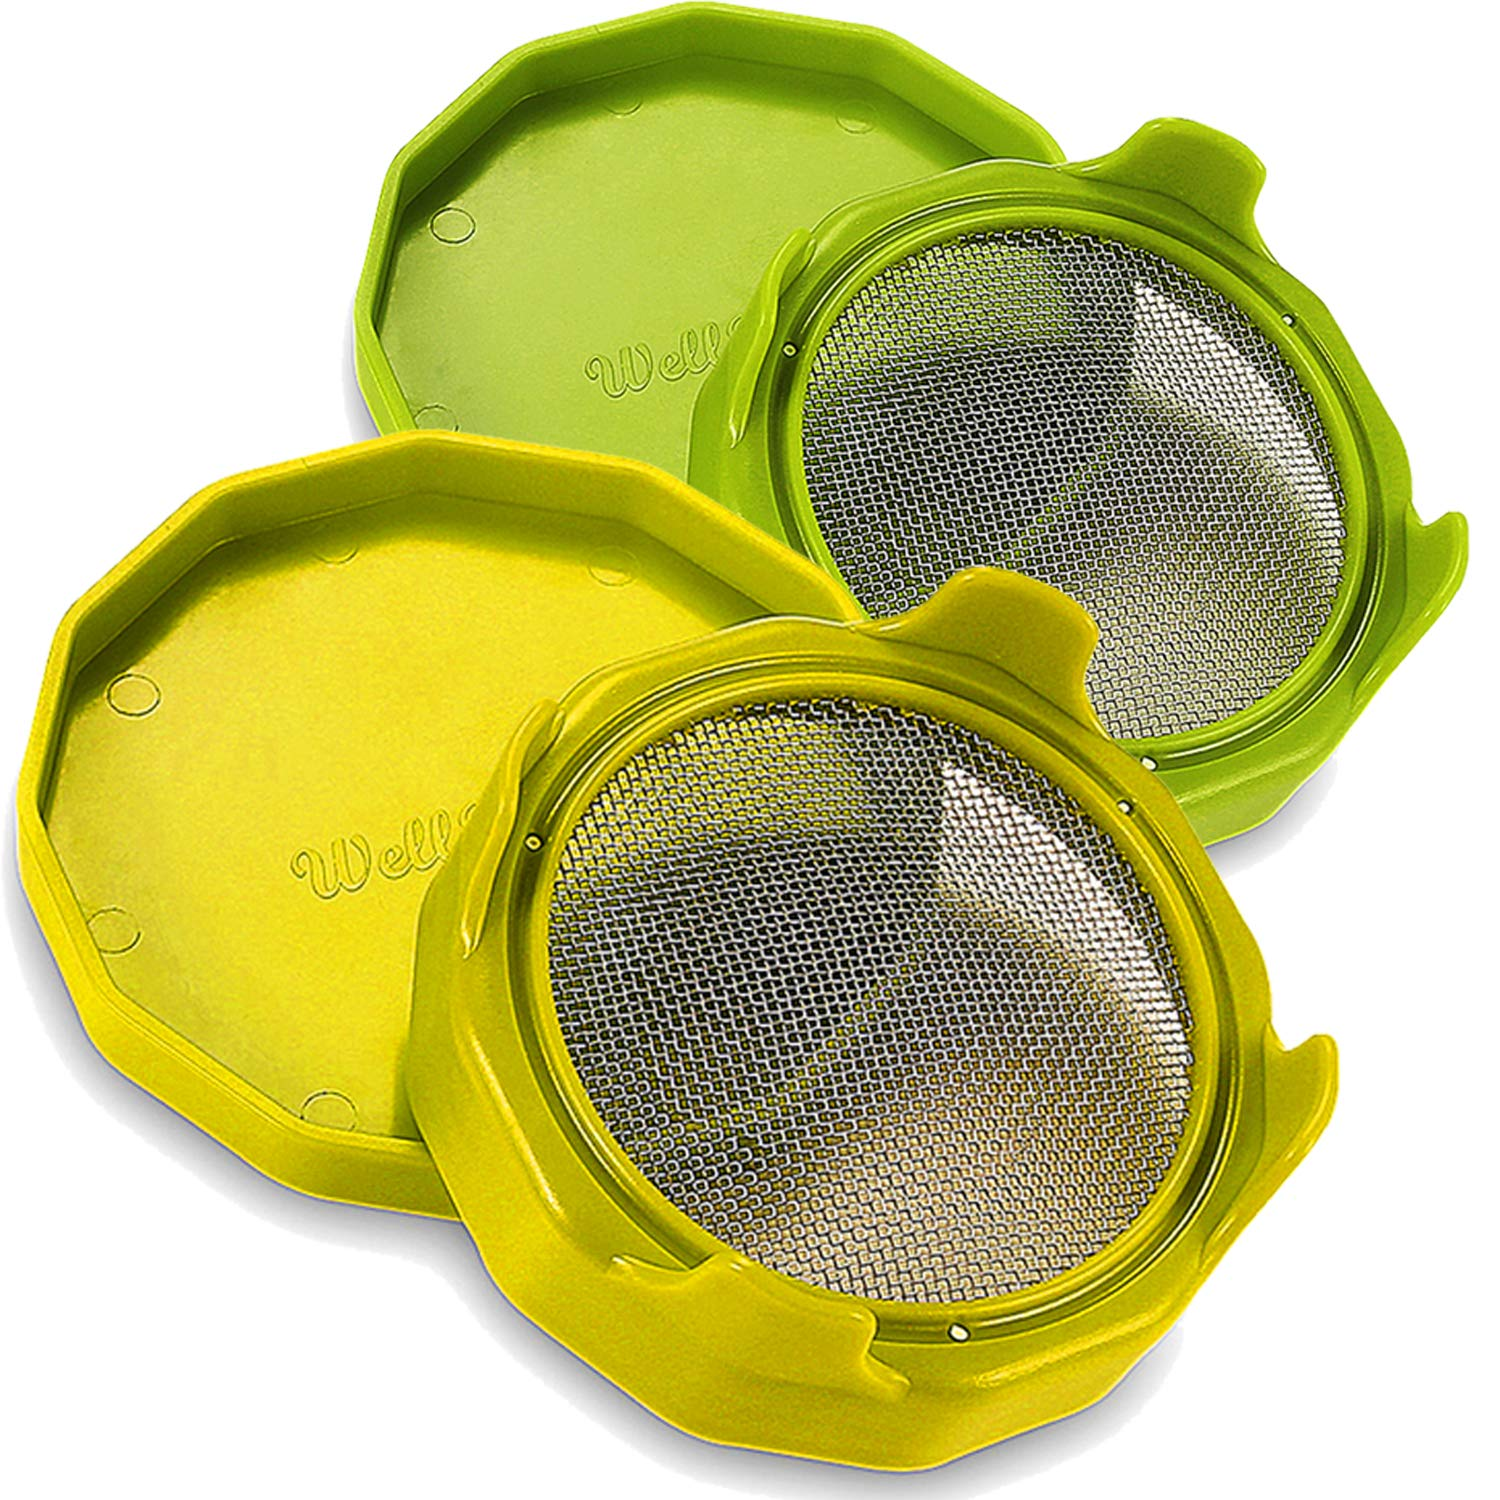 Easy Rinse and Drain Rustproof Sprouting Lids with stand for Wide Mouth Mason Jars - 2 Pack by WELLBANEE